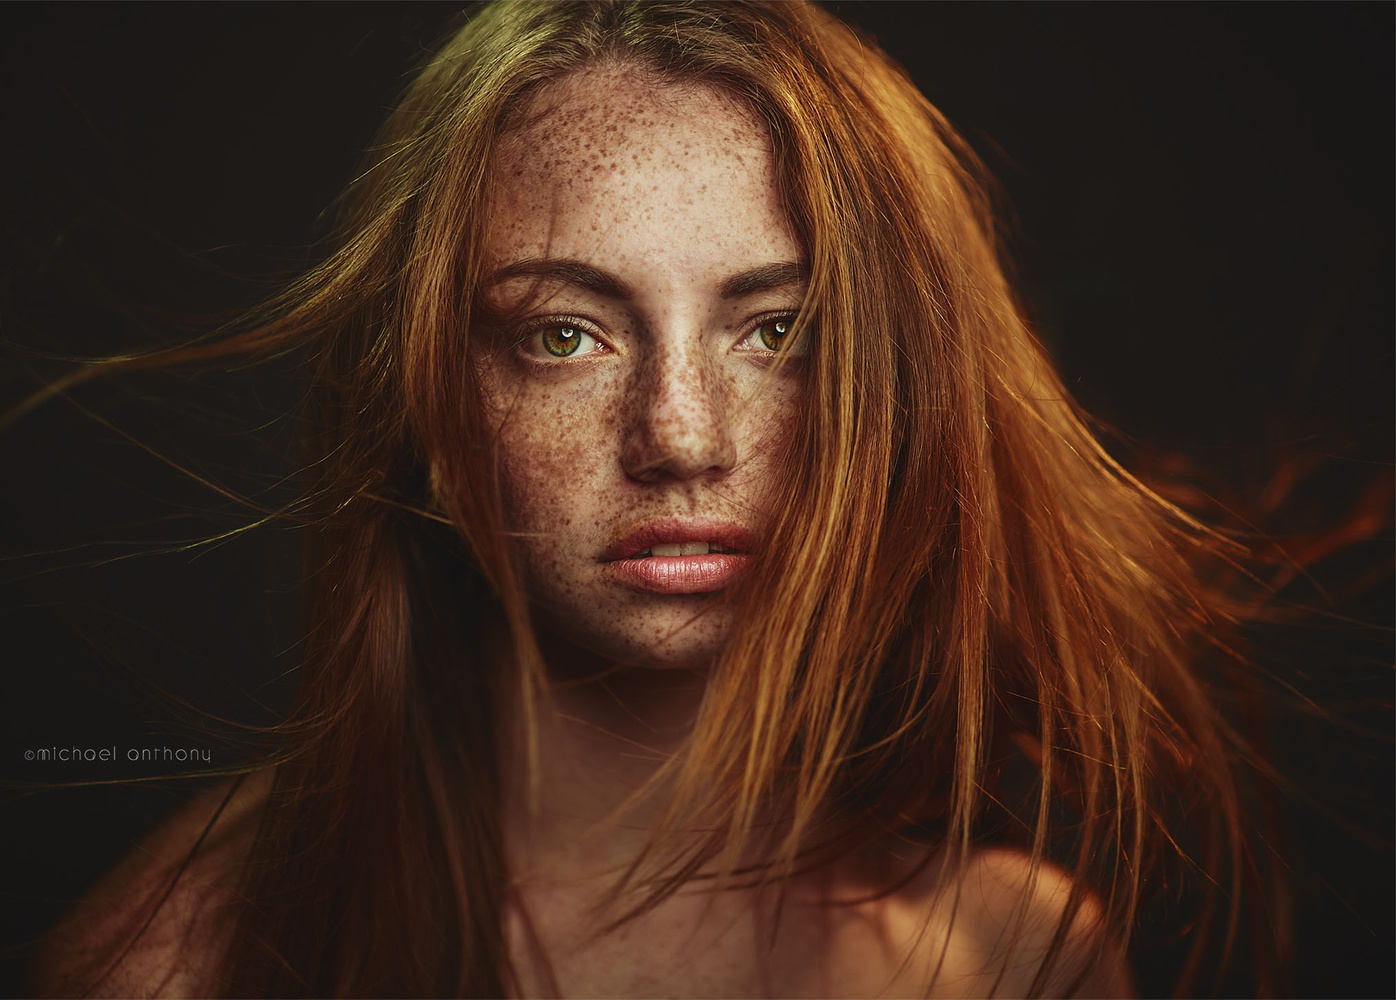 Brylee by Michael Anthony